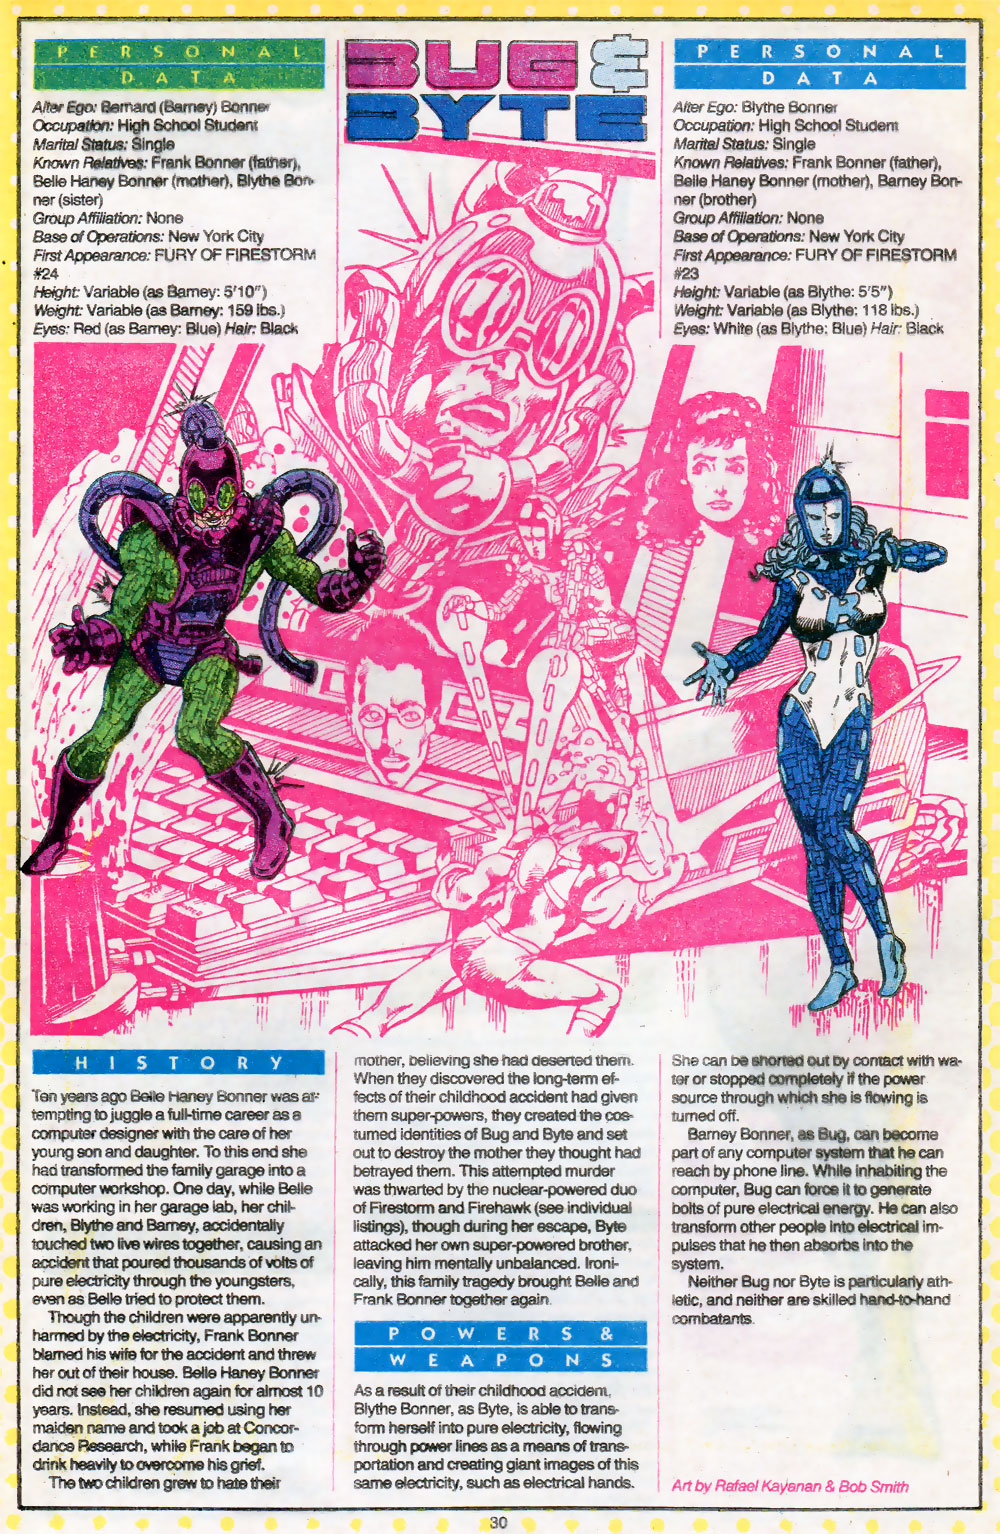 Bug & Byte's Who's Who entry by Rafael Kayanan